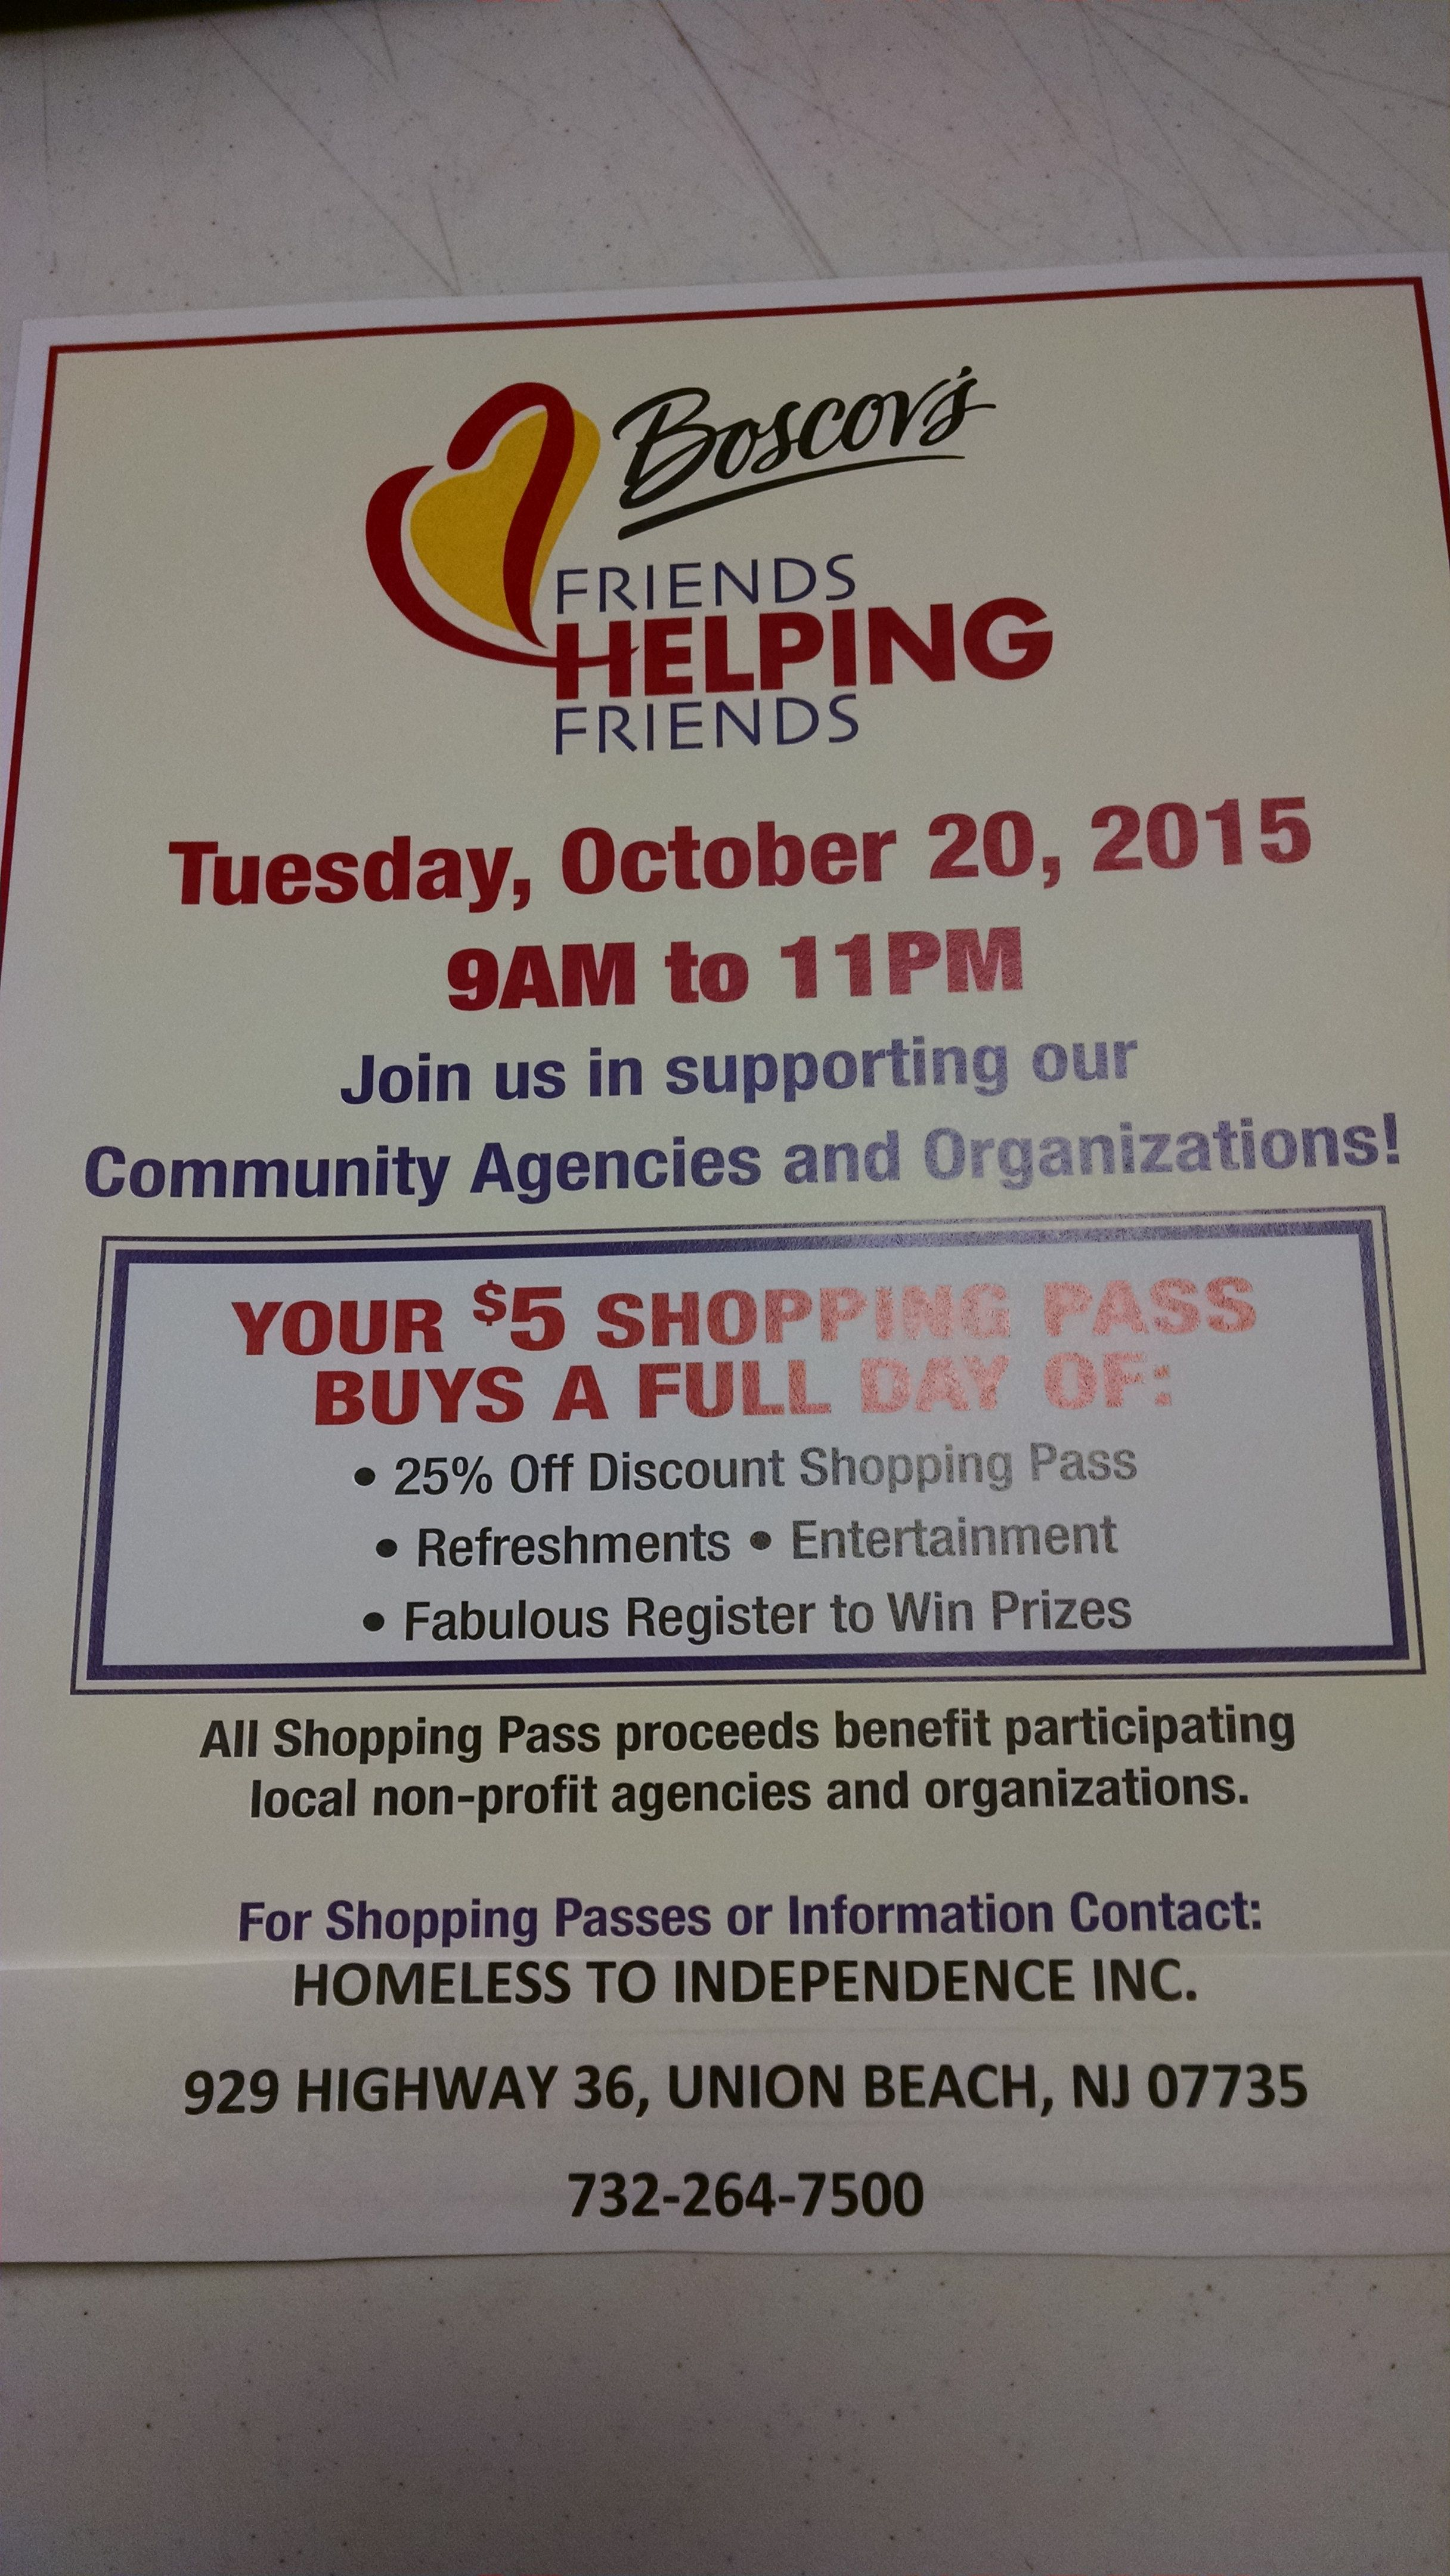 PURCHASE A BOSCOV'S SAVINGS PASS TODAY!  TUESDAY, OCTOBER 20TH, 2015 FROM 9AM TO 11PM  THIS IS THE ONLY DAY OF THE YEAR BOSCOV'S OFFERS A COUPON!!   GOOD AT ALL 63-BOSCOV'S LOCATIONS IN:  NJ,NY,DE,PA,MD,OH   PLEASE NOTE CANNOT BE USED FOR AN ONLINE PURCHASE!  THANK YOU FOR YOUR SUPPORT!